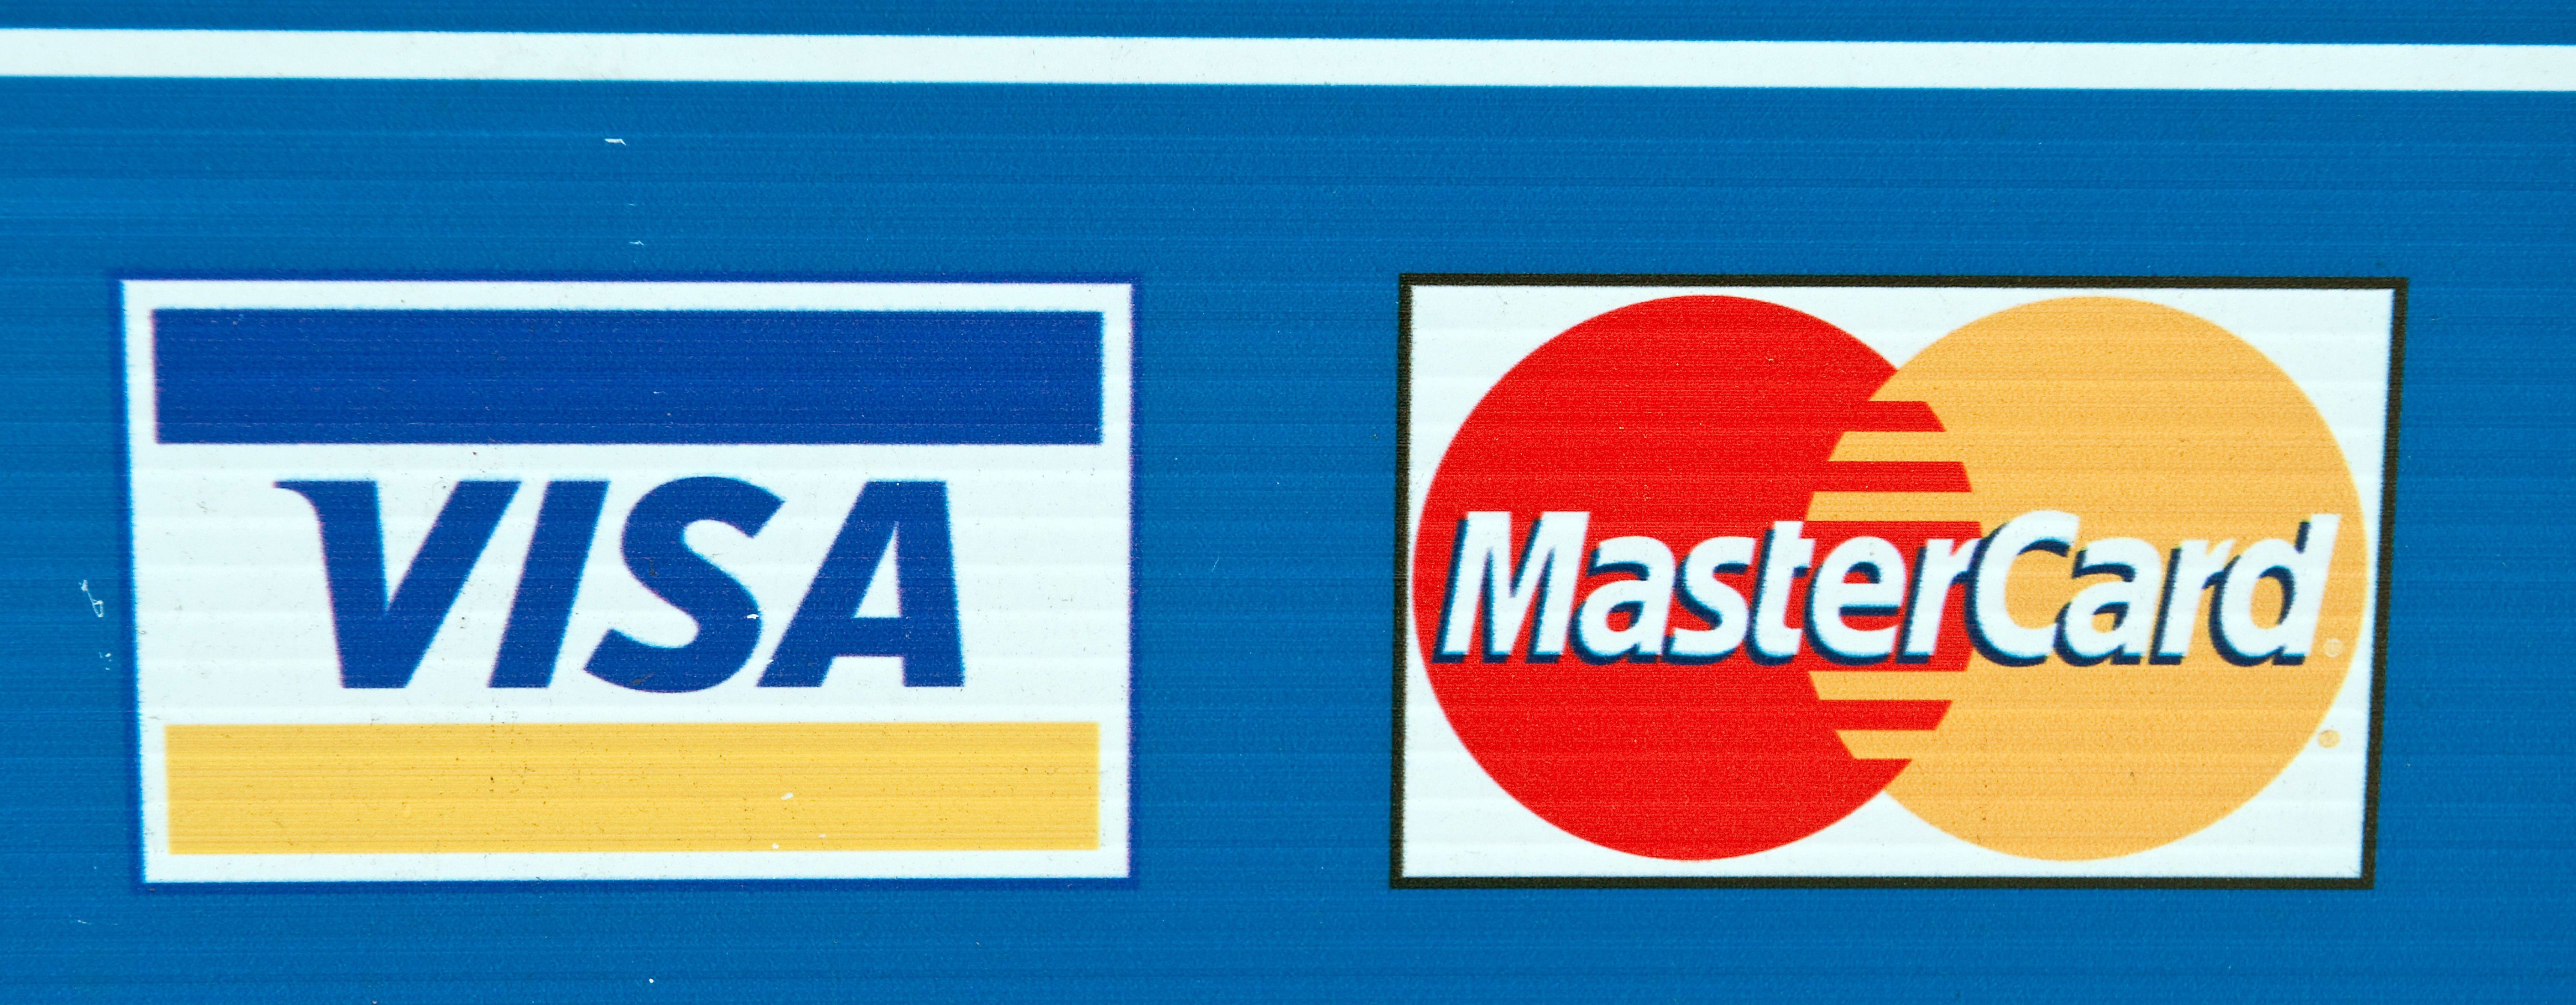 Visa and MasterCard credit card logos are seen on a sign in Washington on March 30, 2012. Credit card giants Visa and MasterCard were scrambling to thwart cyber crooks who looted a massive trove of precious account data, evidently from a payment processor in New York. Gartner analyst Avivah Litan said that industry sources revealed that numbers from more than 10 million credit card accounts were stolen in the breach, with the entry point being a New York City taxi and parking garage company. AFP PHOTO/Nicholas KAMM / AFP PHOTO / NICHOLAS KAMM (Photo credit should read NICHOLAS KAMM/AFP/Getty Images)